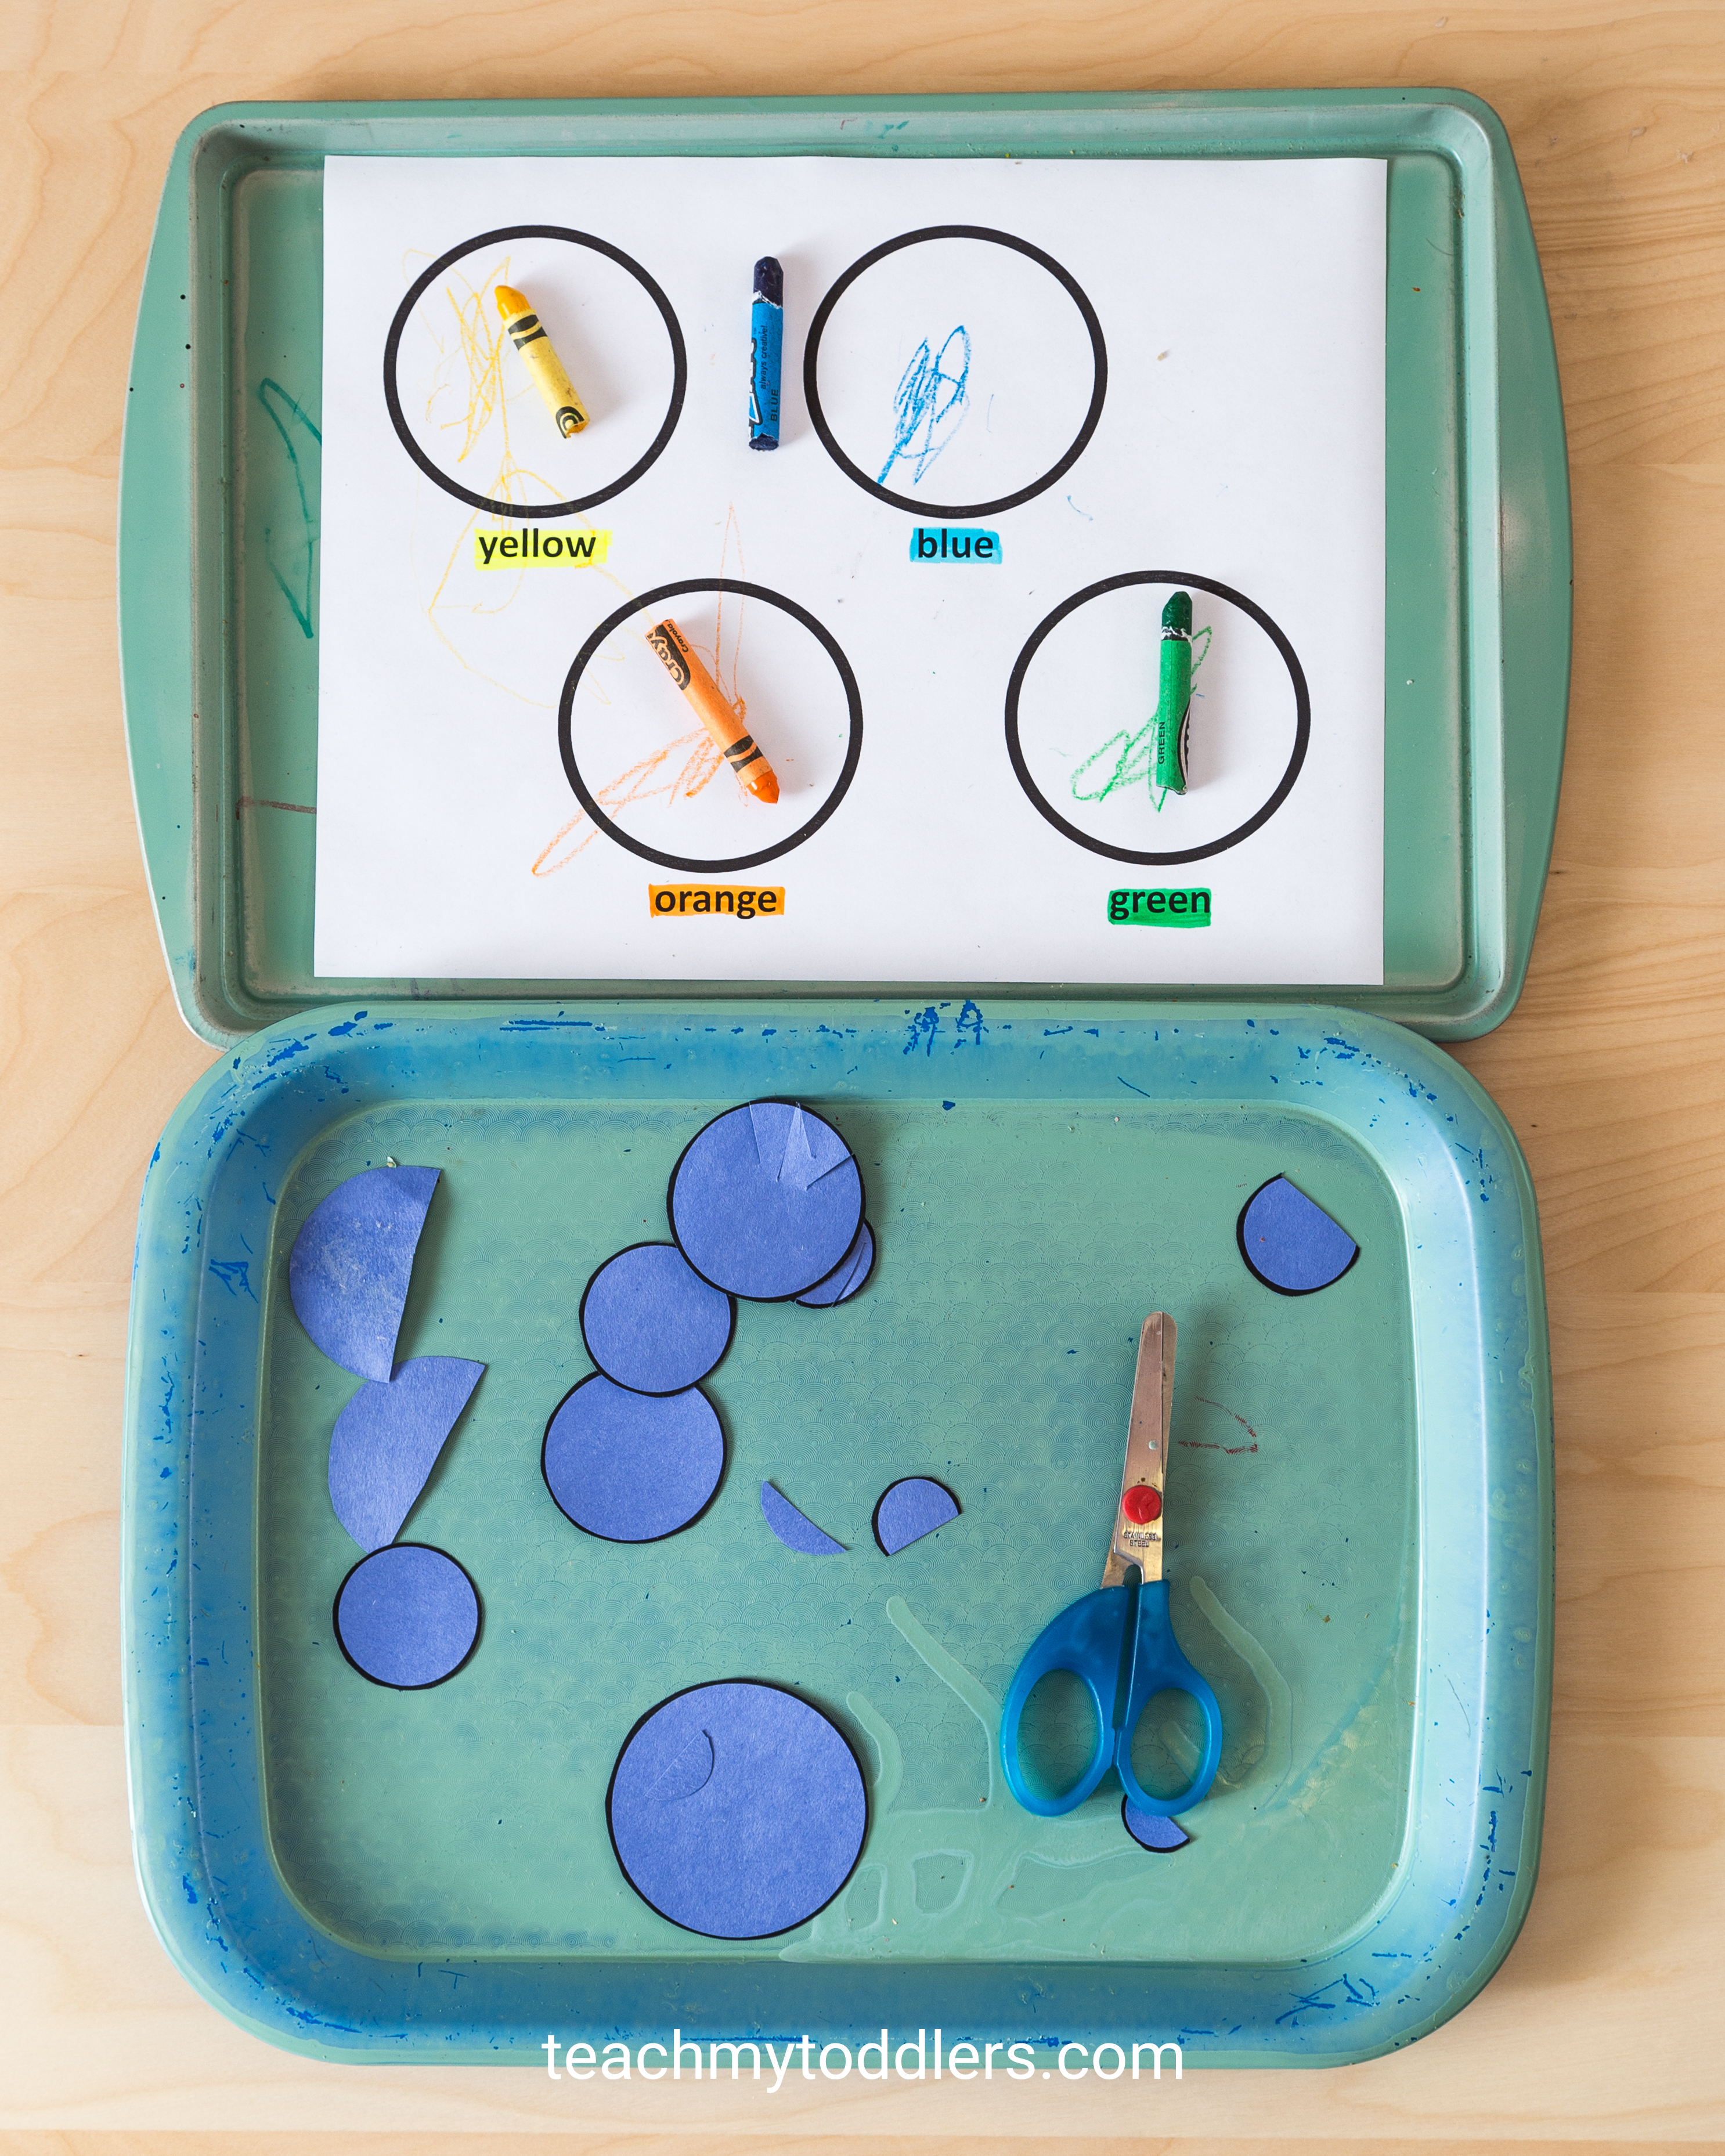 Learn how to use these circle trays to teach your toddlers shapes